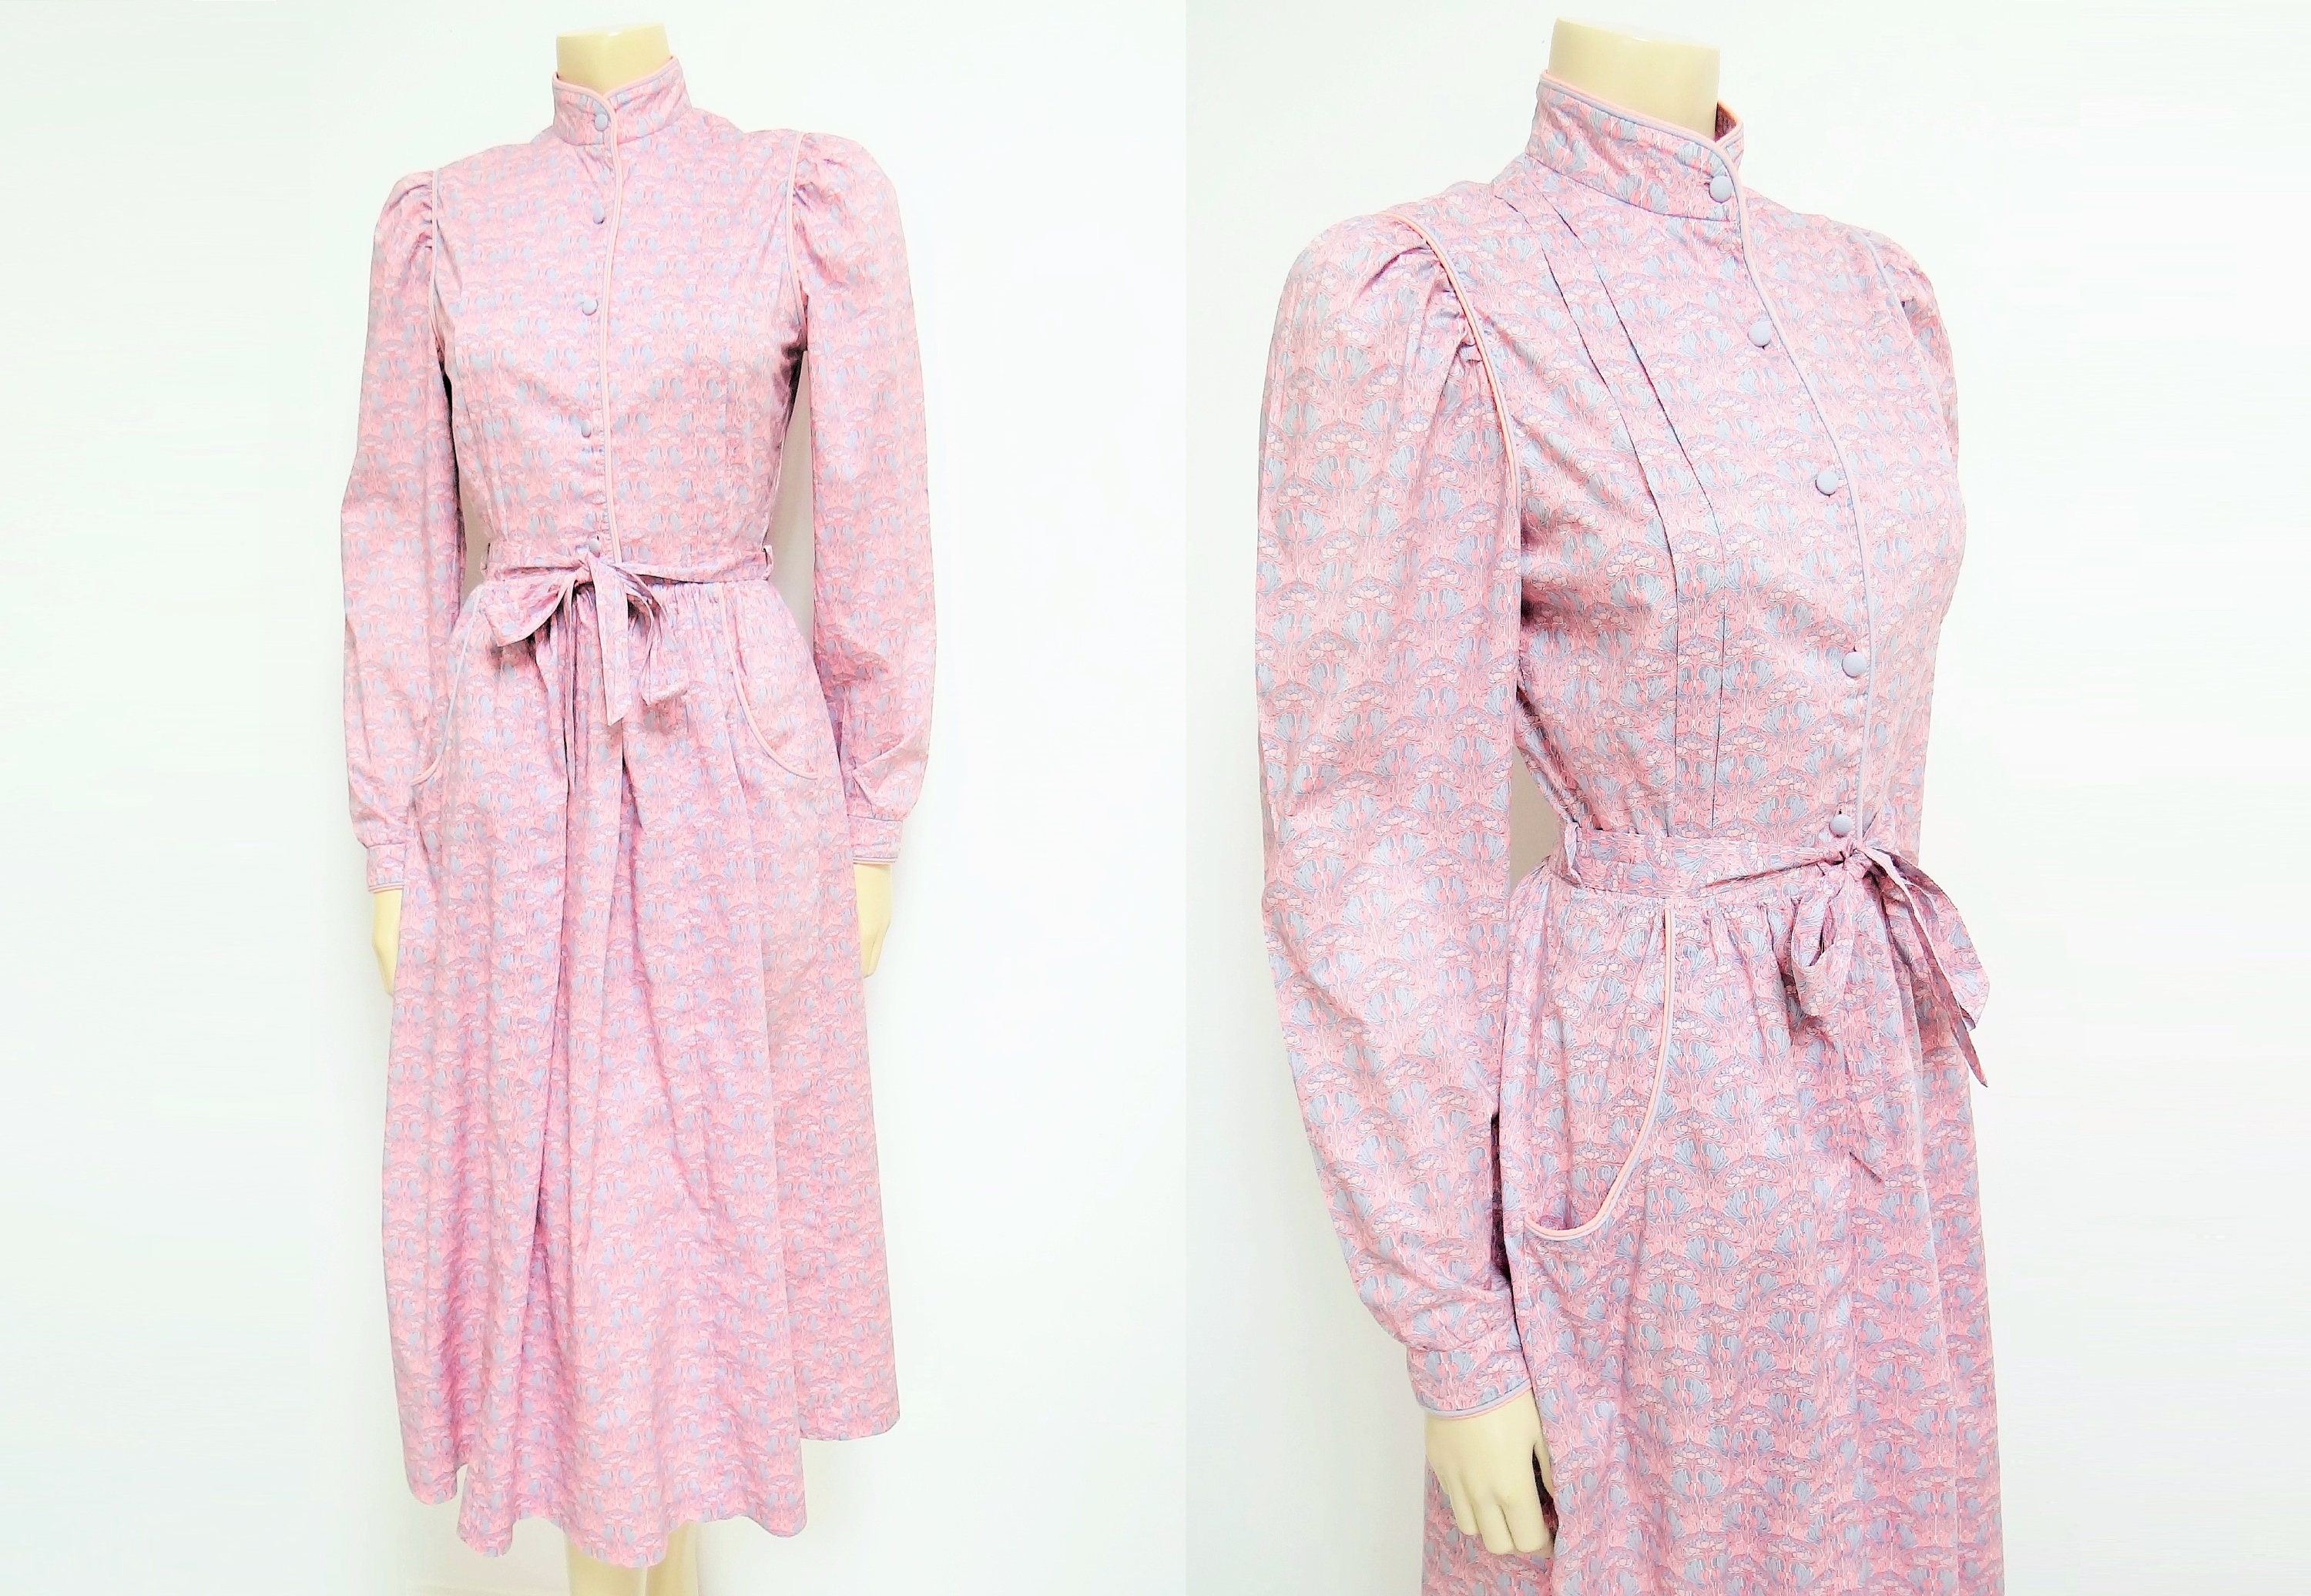 UK8 Vintage Dress Prairie Dress Bohemian Clothing Pink Dress Alternative Wedding Dress Vintage Clothes Womens Dresses Pink Art